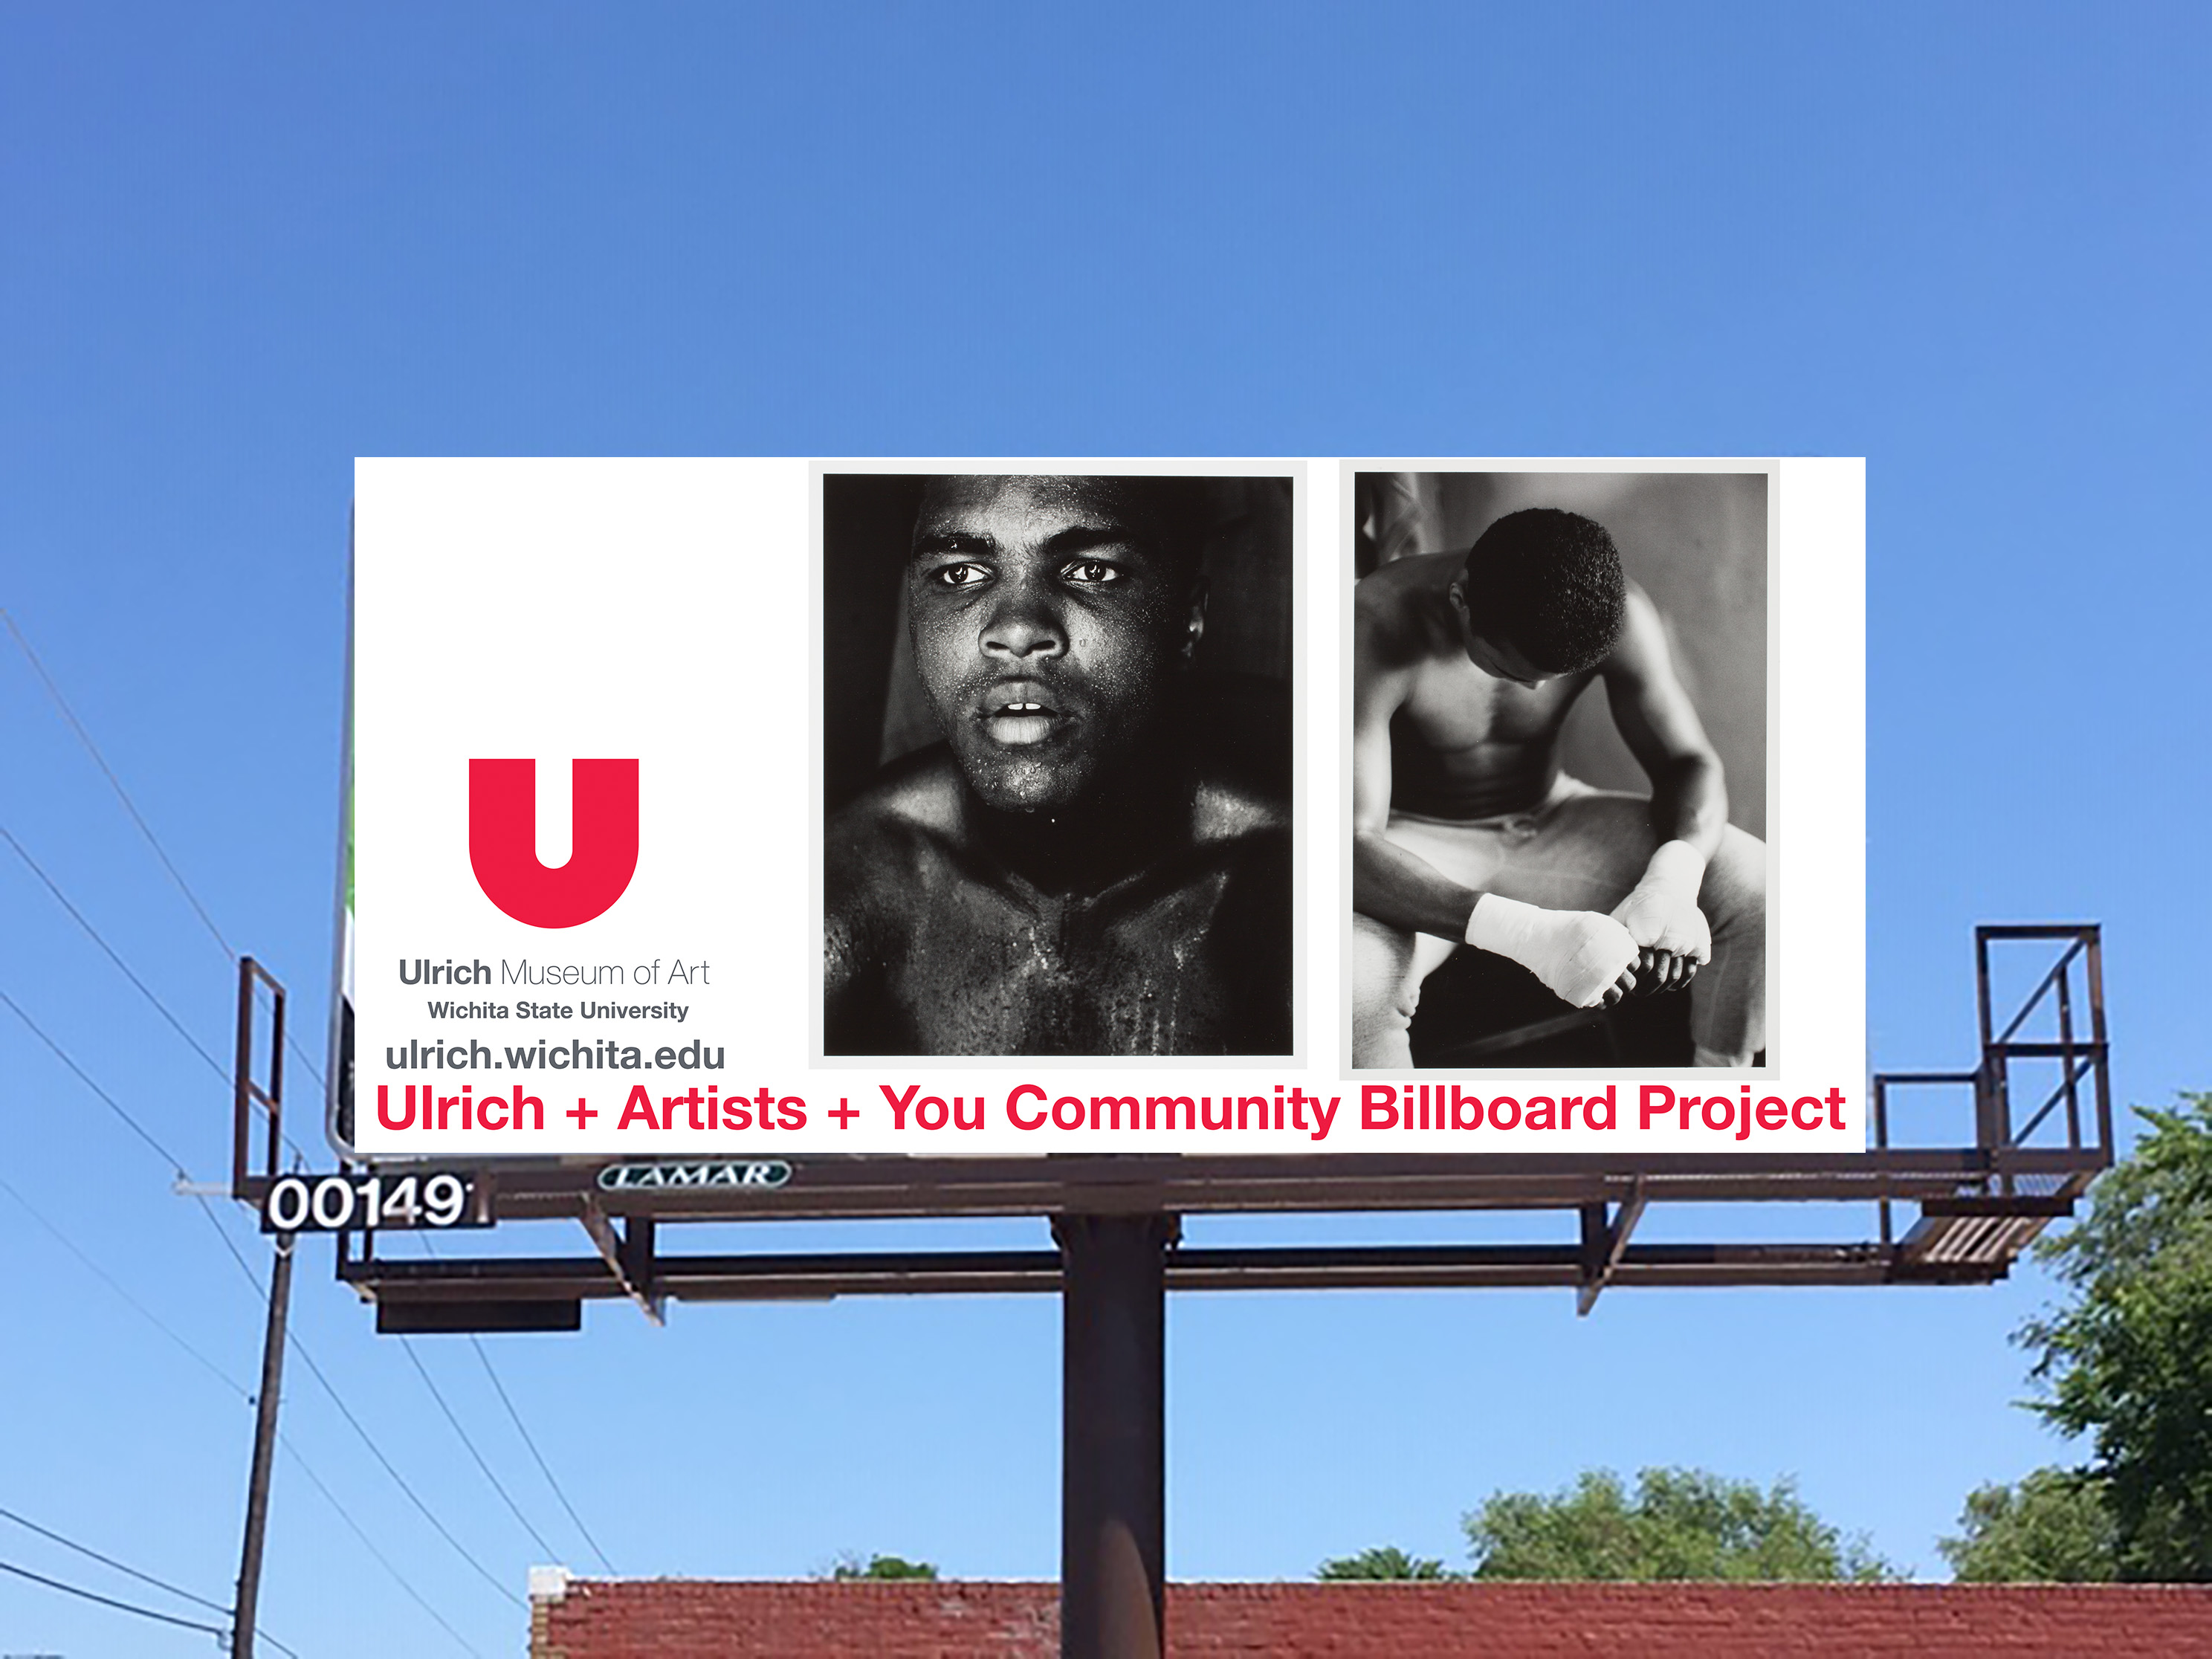 Ulrich + Artists + You Community Billboard Project Event Image